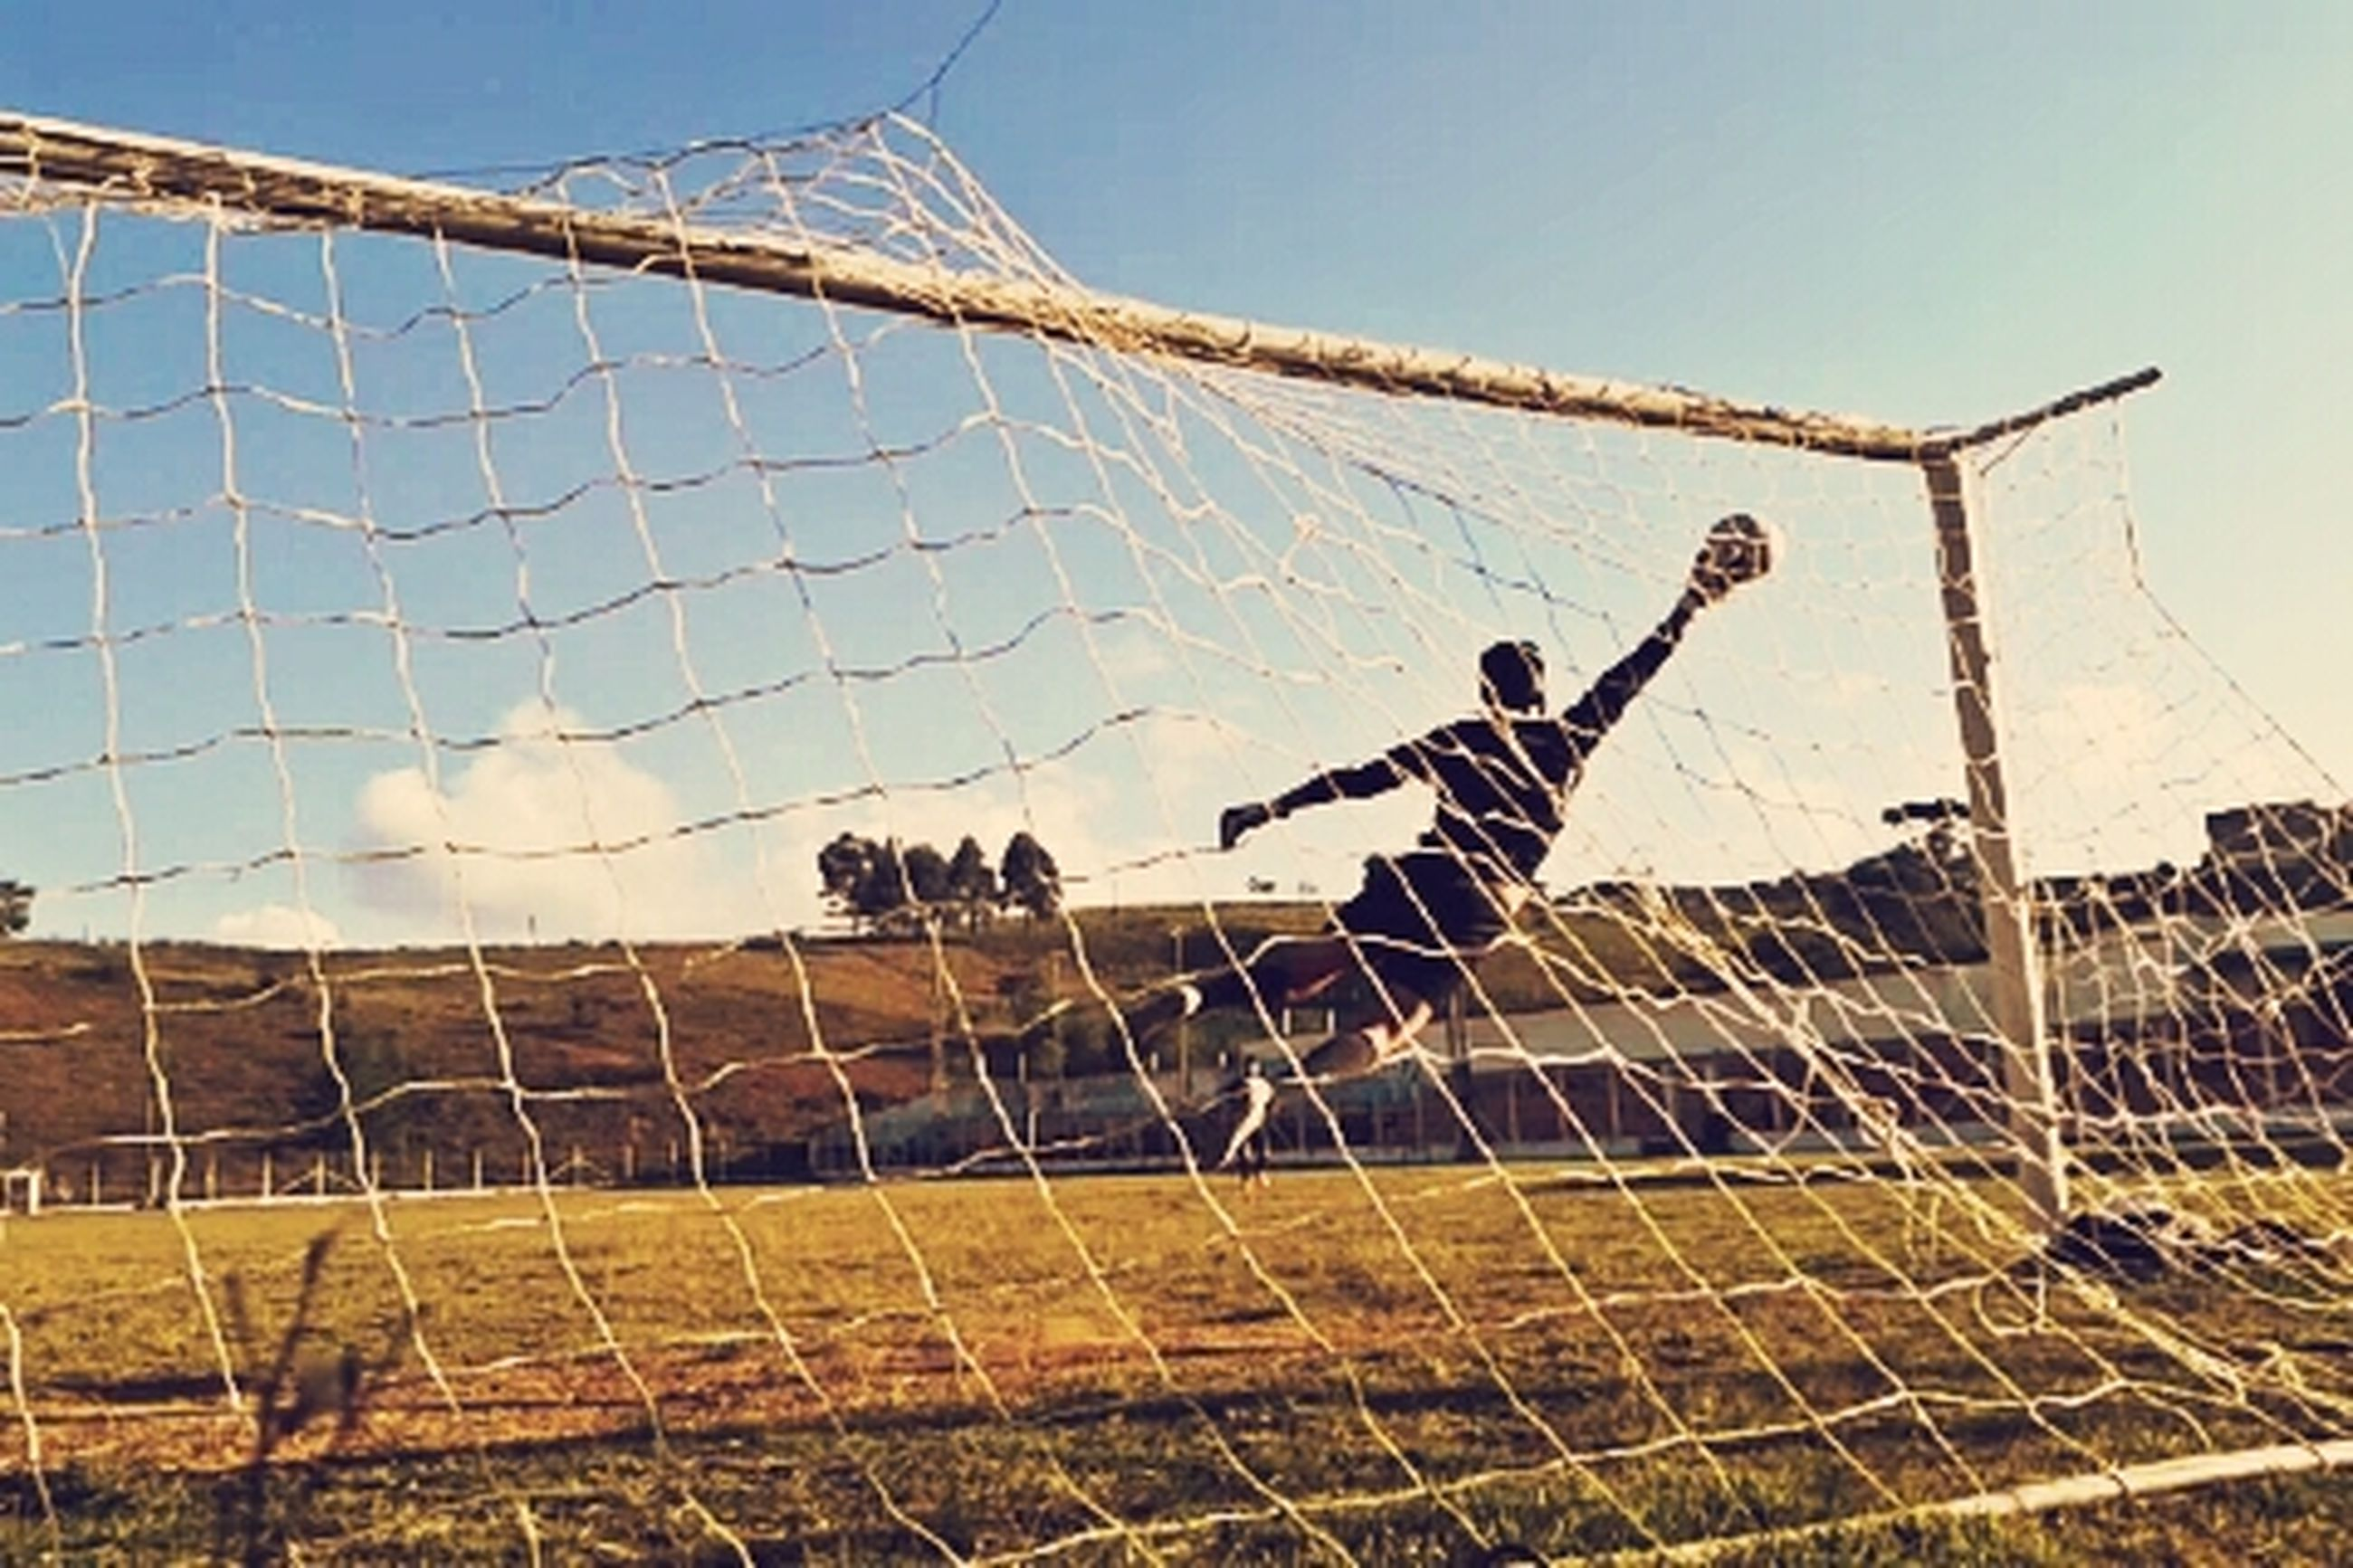 fence, field, sport, leisure activity, lifestyles, men, sky, chainlink fence, grass, day, protection, built structure, building exterior, clear sky, safety, full length, architecture, outdoors